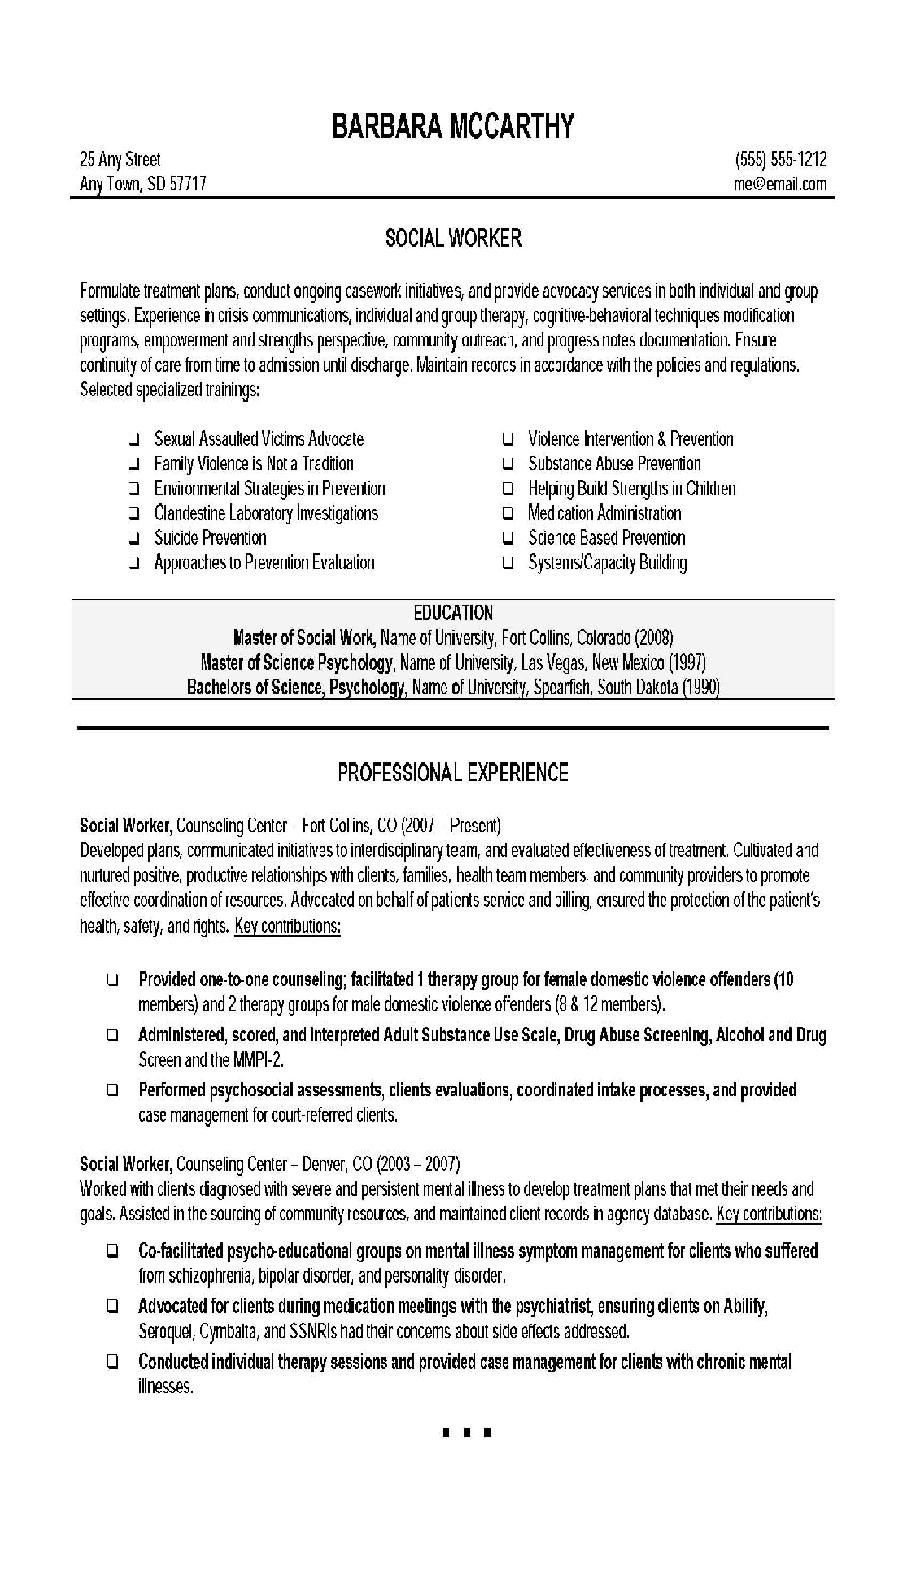 social worker resume 4 - Social Work Resume